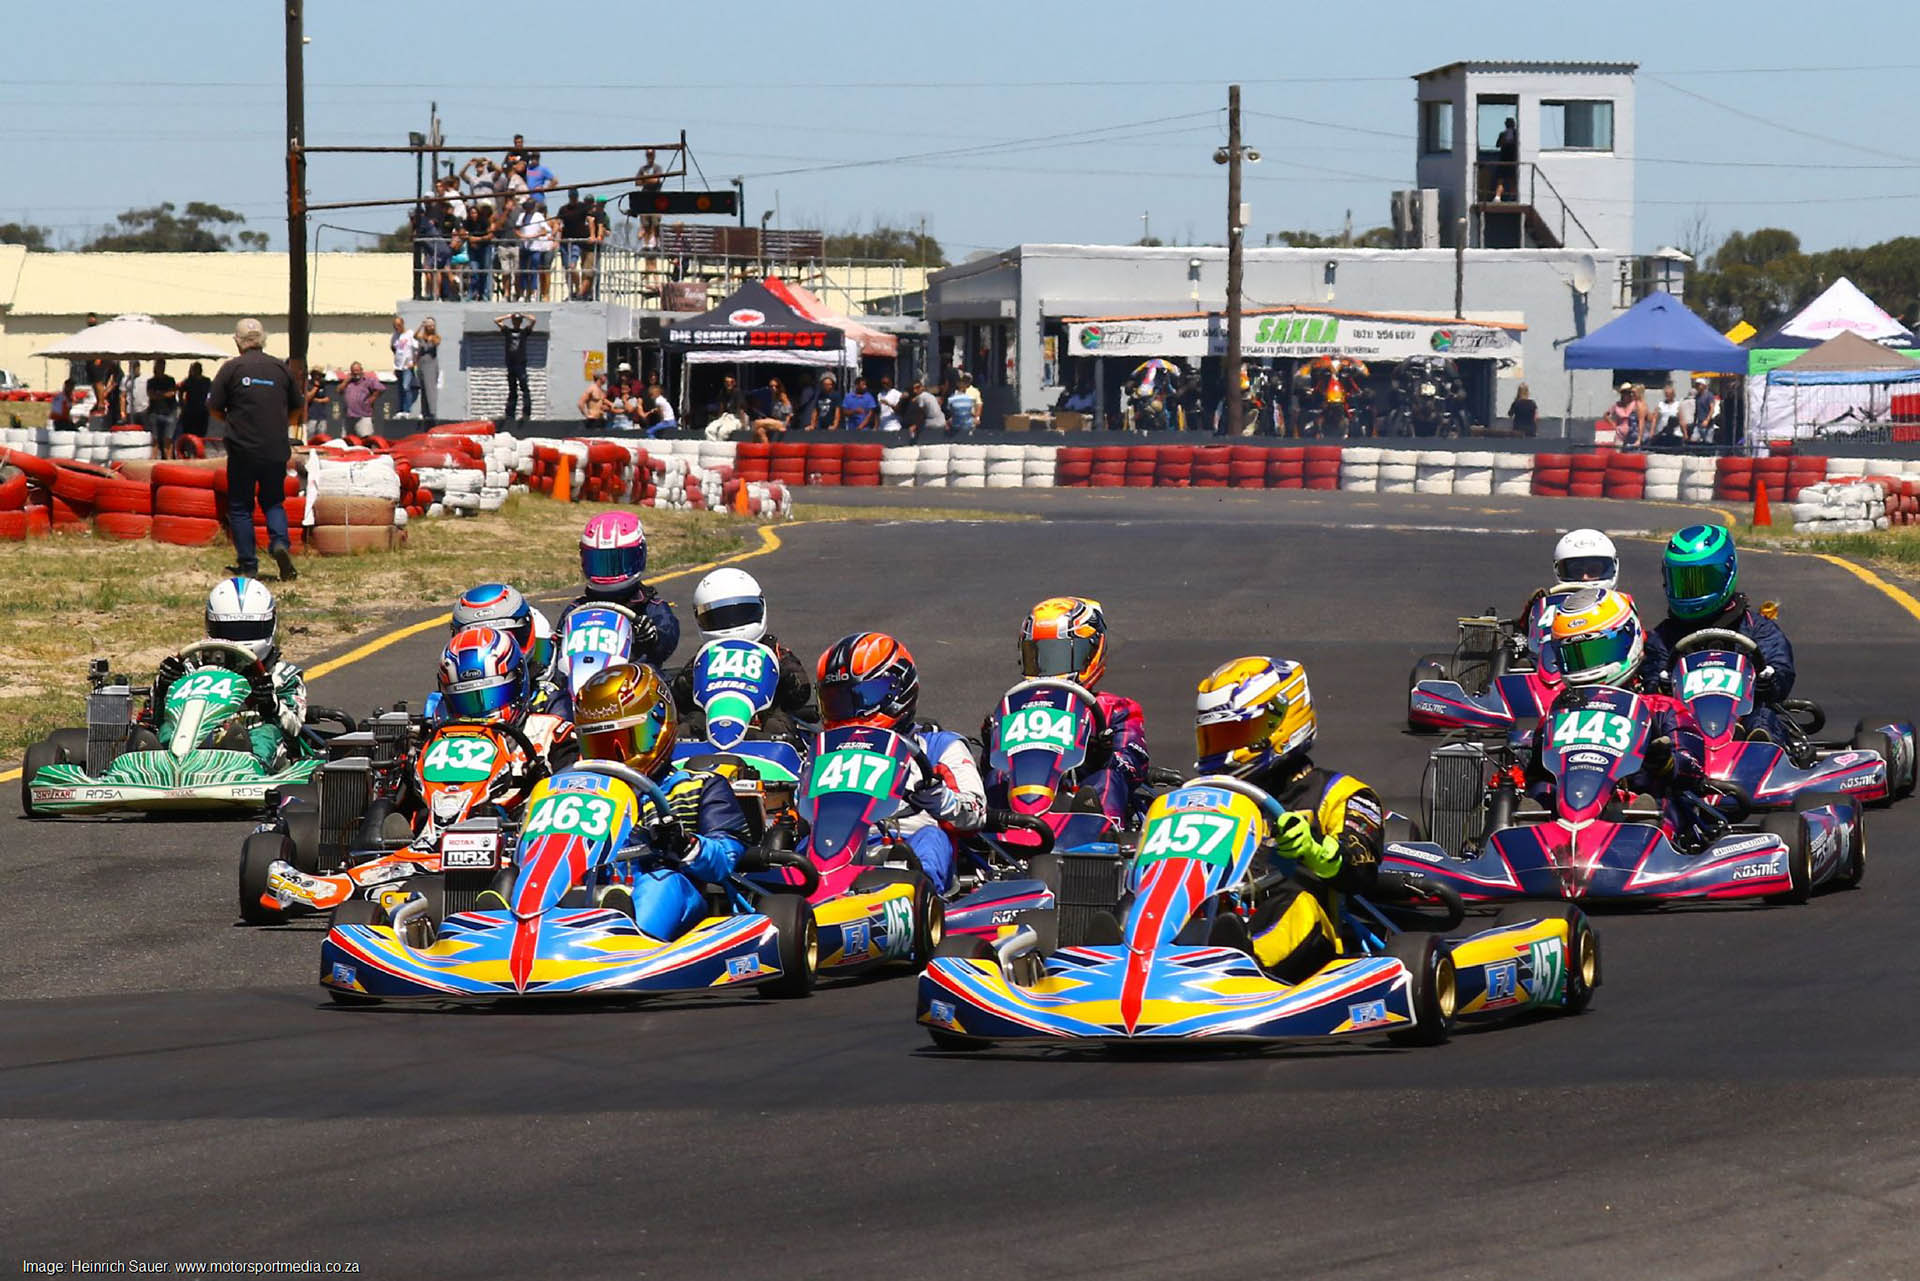 Charl Visser leads the way in Junior Max